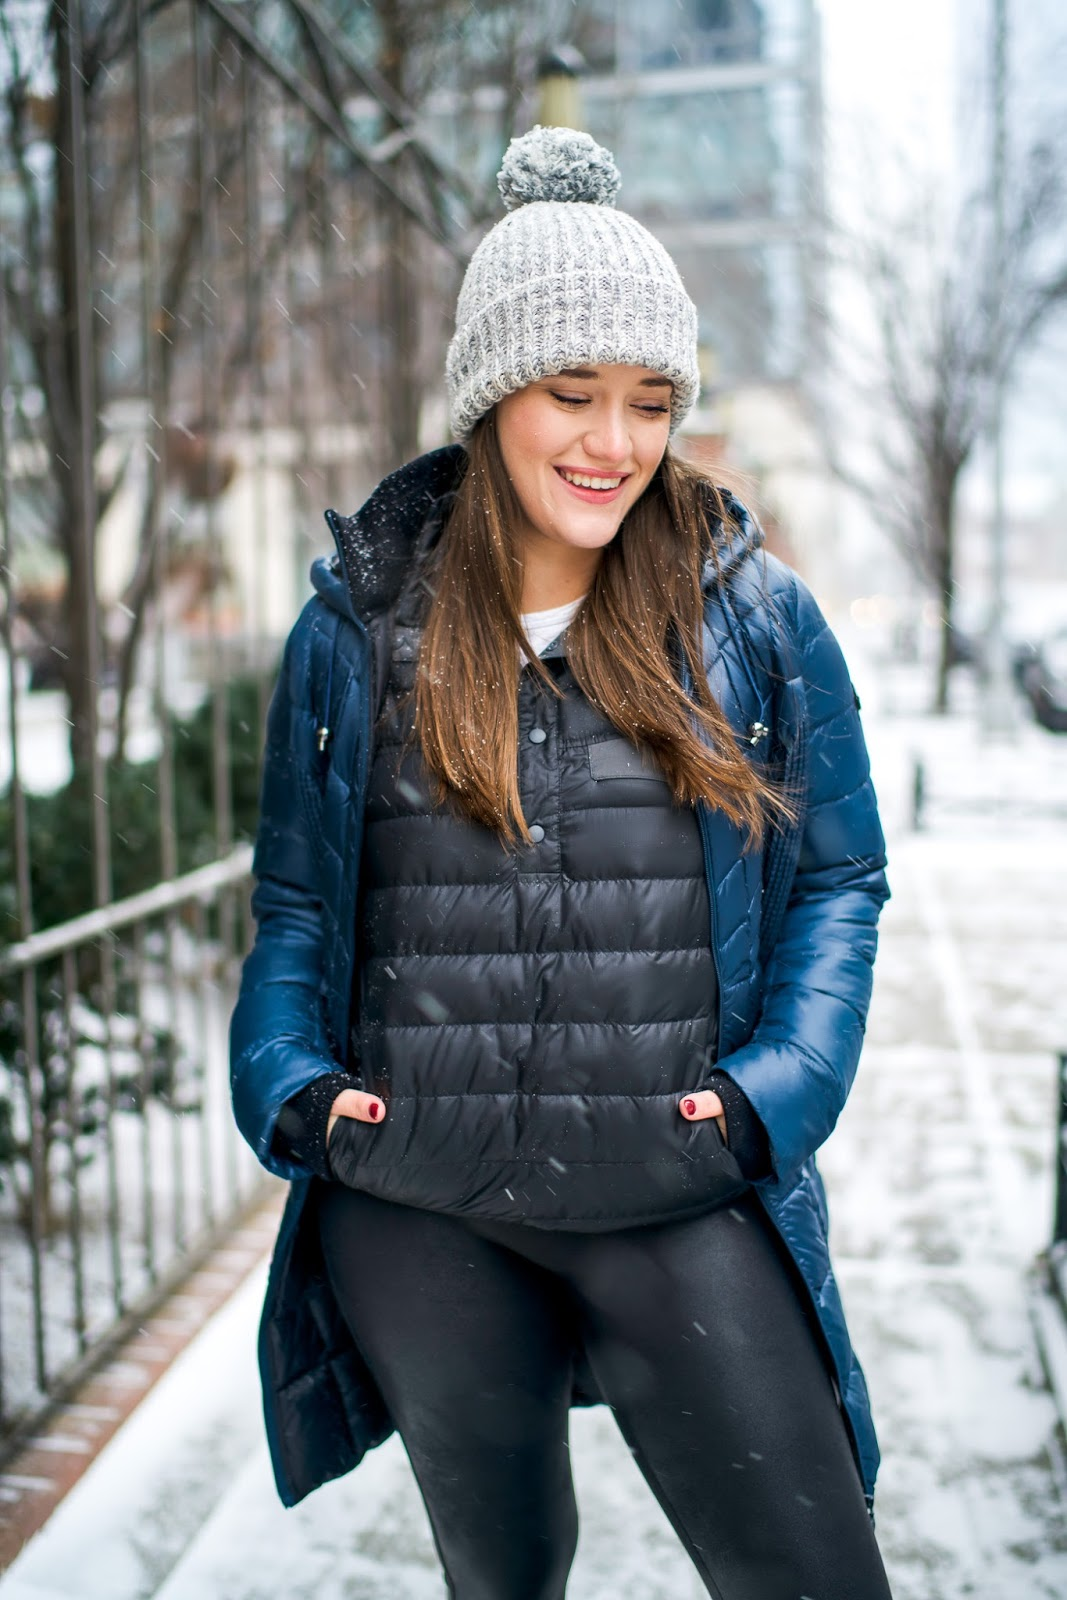 Recent Items On Sale by popular New York style blogger Covering the Bases